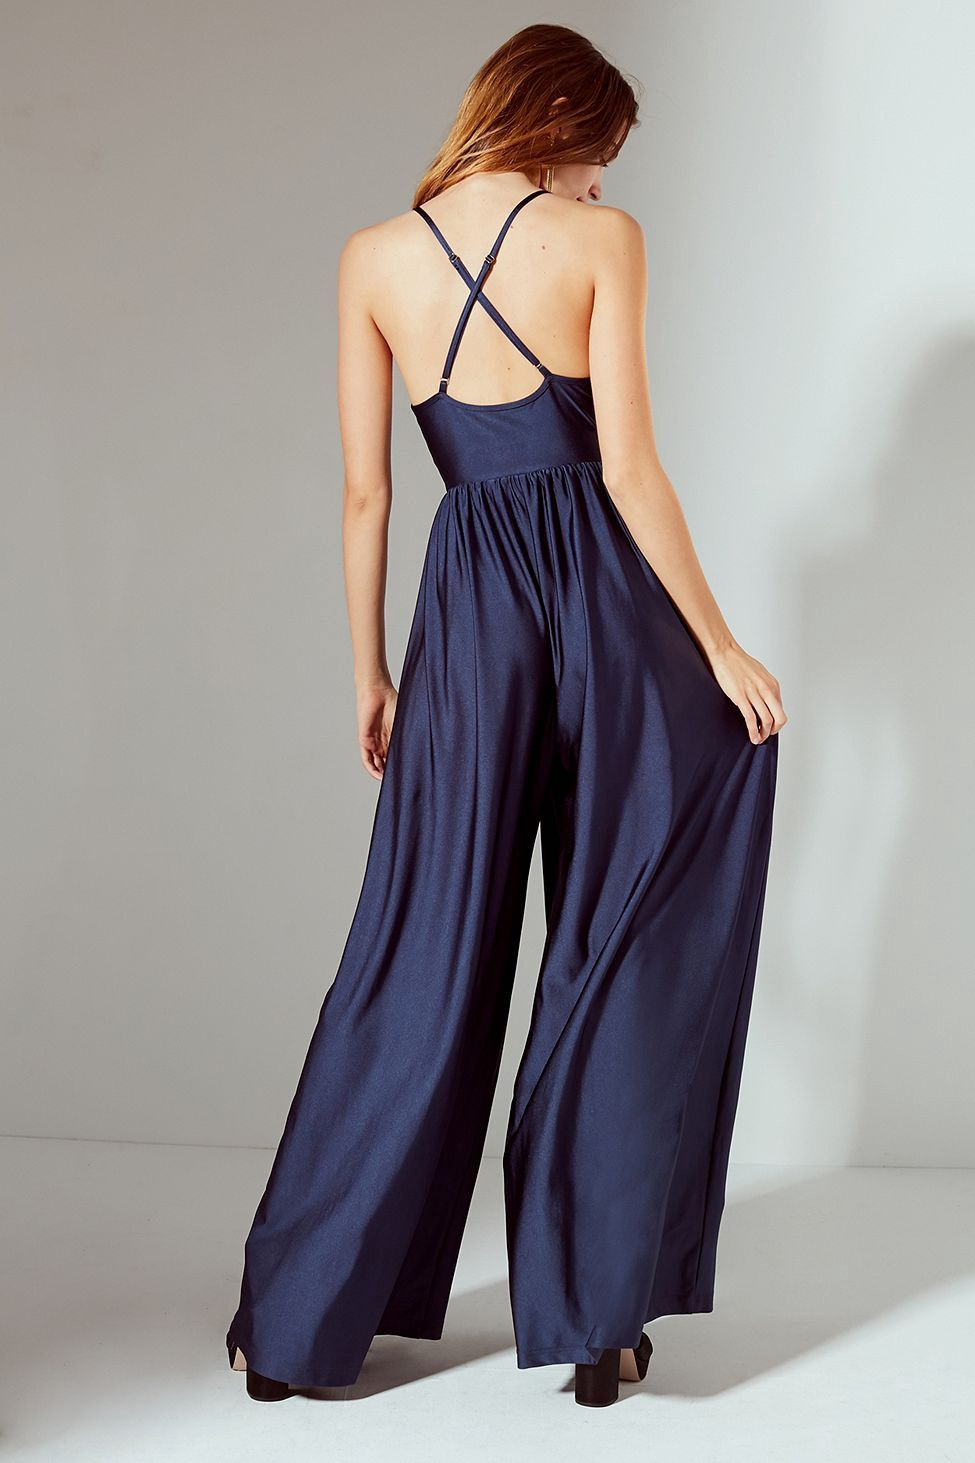 c2fcb23aeeb Urban Outfitters Uo Gia Plunging Shimmer Jumpsuit - Navy